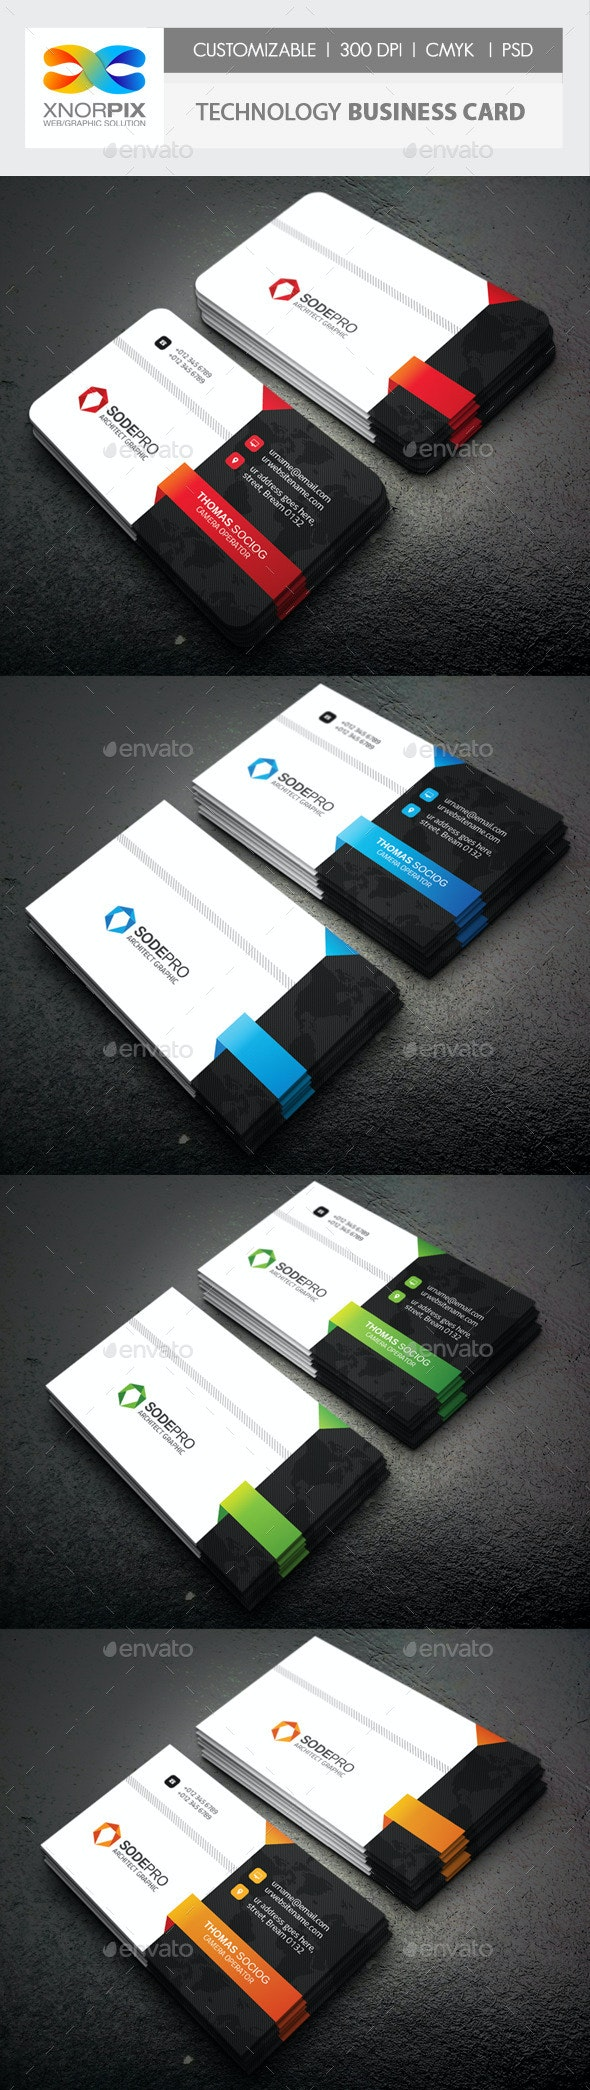 Technology Business Card - Corporate Business Cards